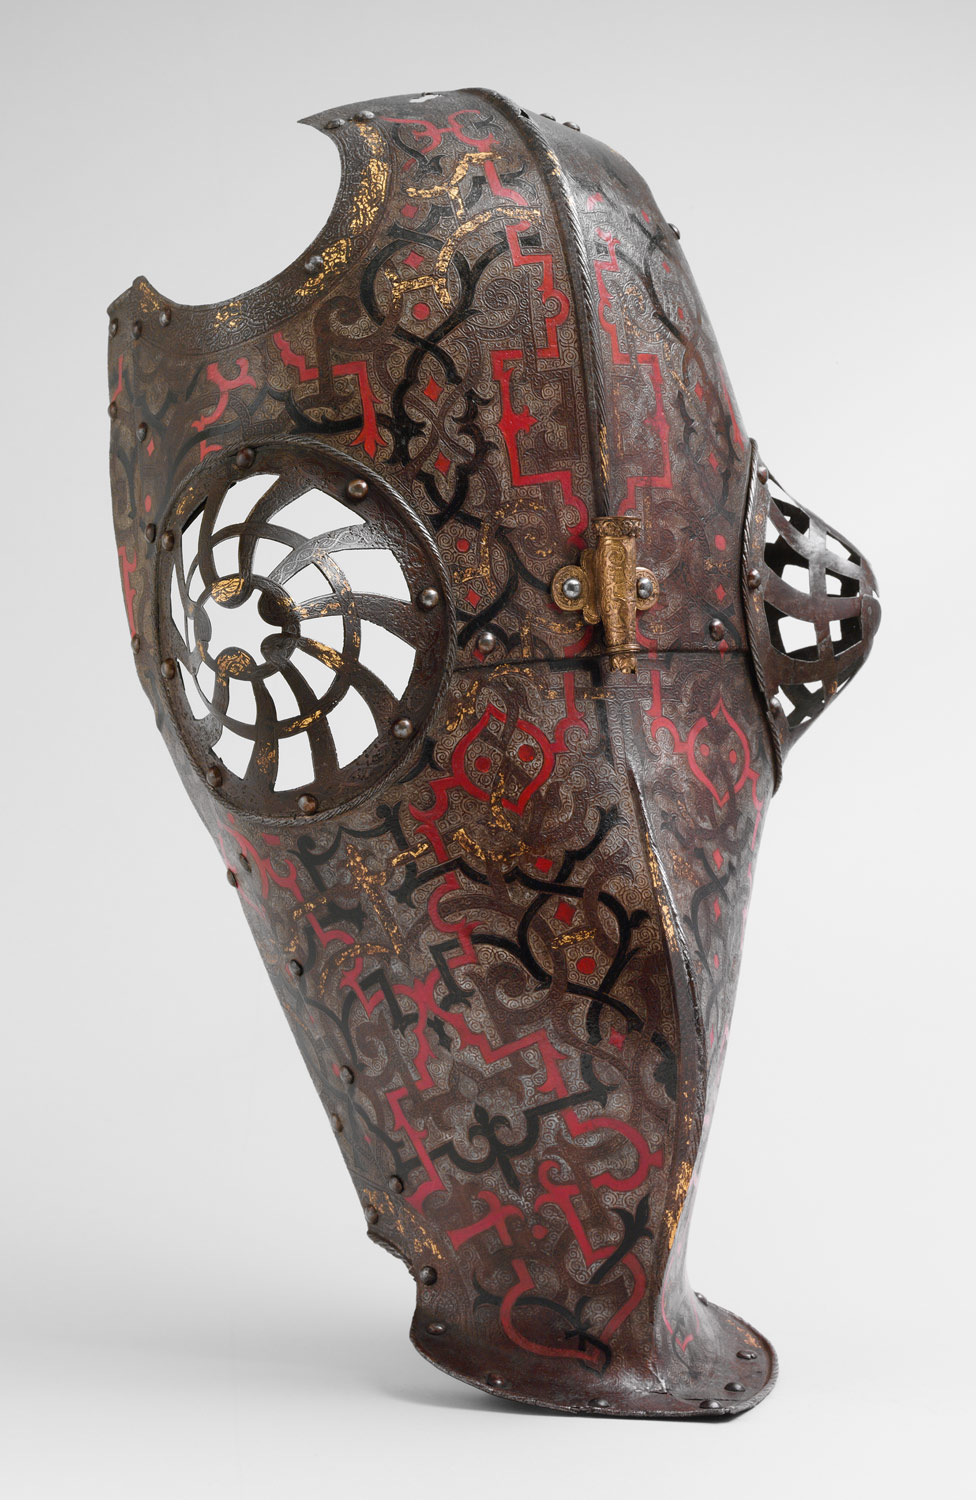 Shaffron (Horses Head Defense) Belonging to an Armor for Field and Tournament Made for Duke Nikolaus The Black Radziwill (1515–1565), Duke of Nesvizh and Olyka, Prince of the Empire, Grand Chancellor and Marshal of Lithuania